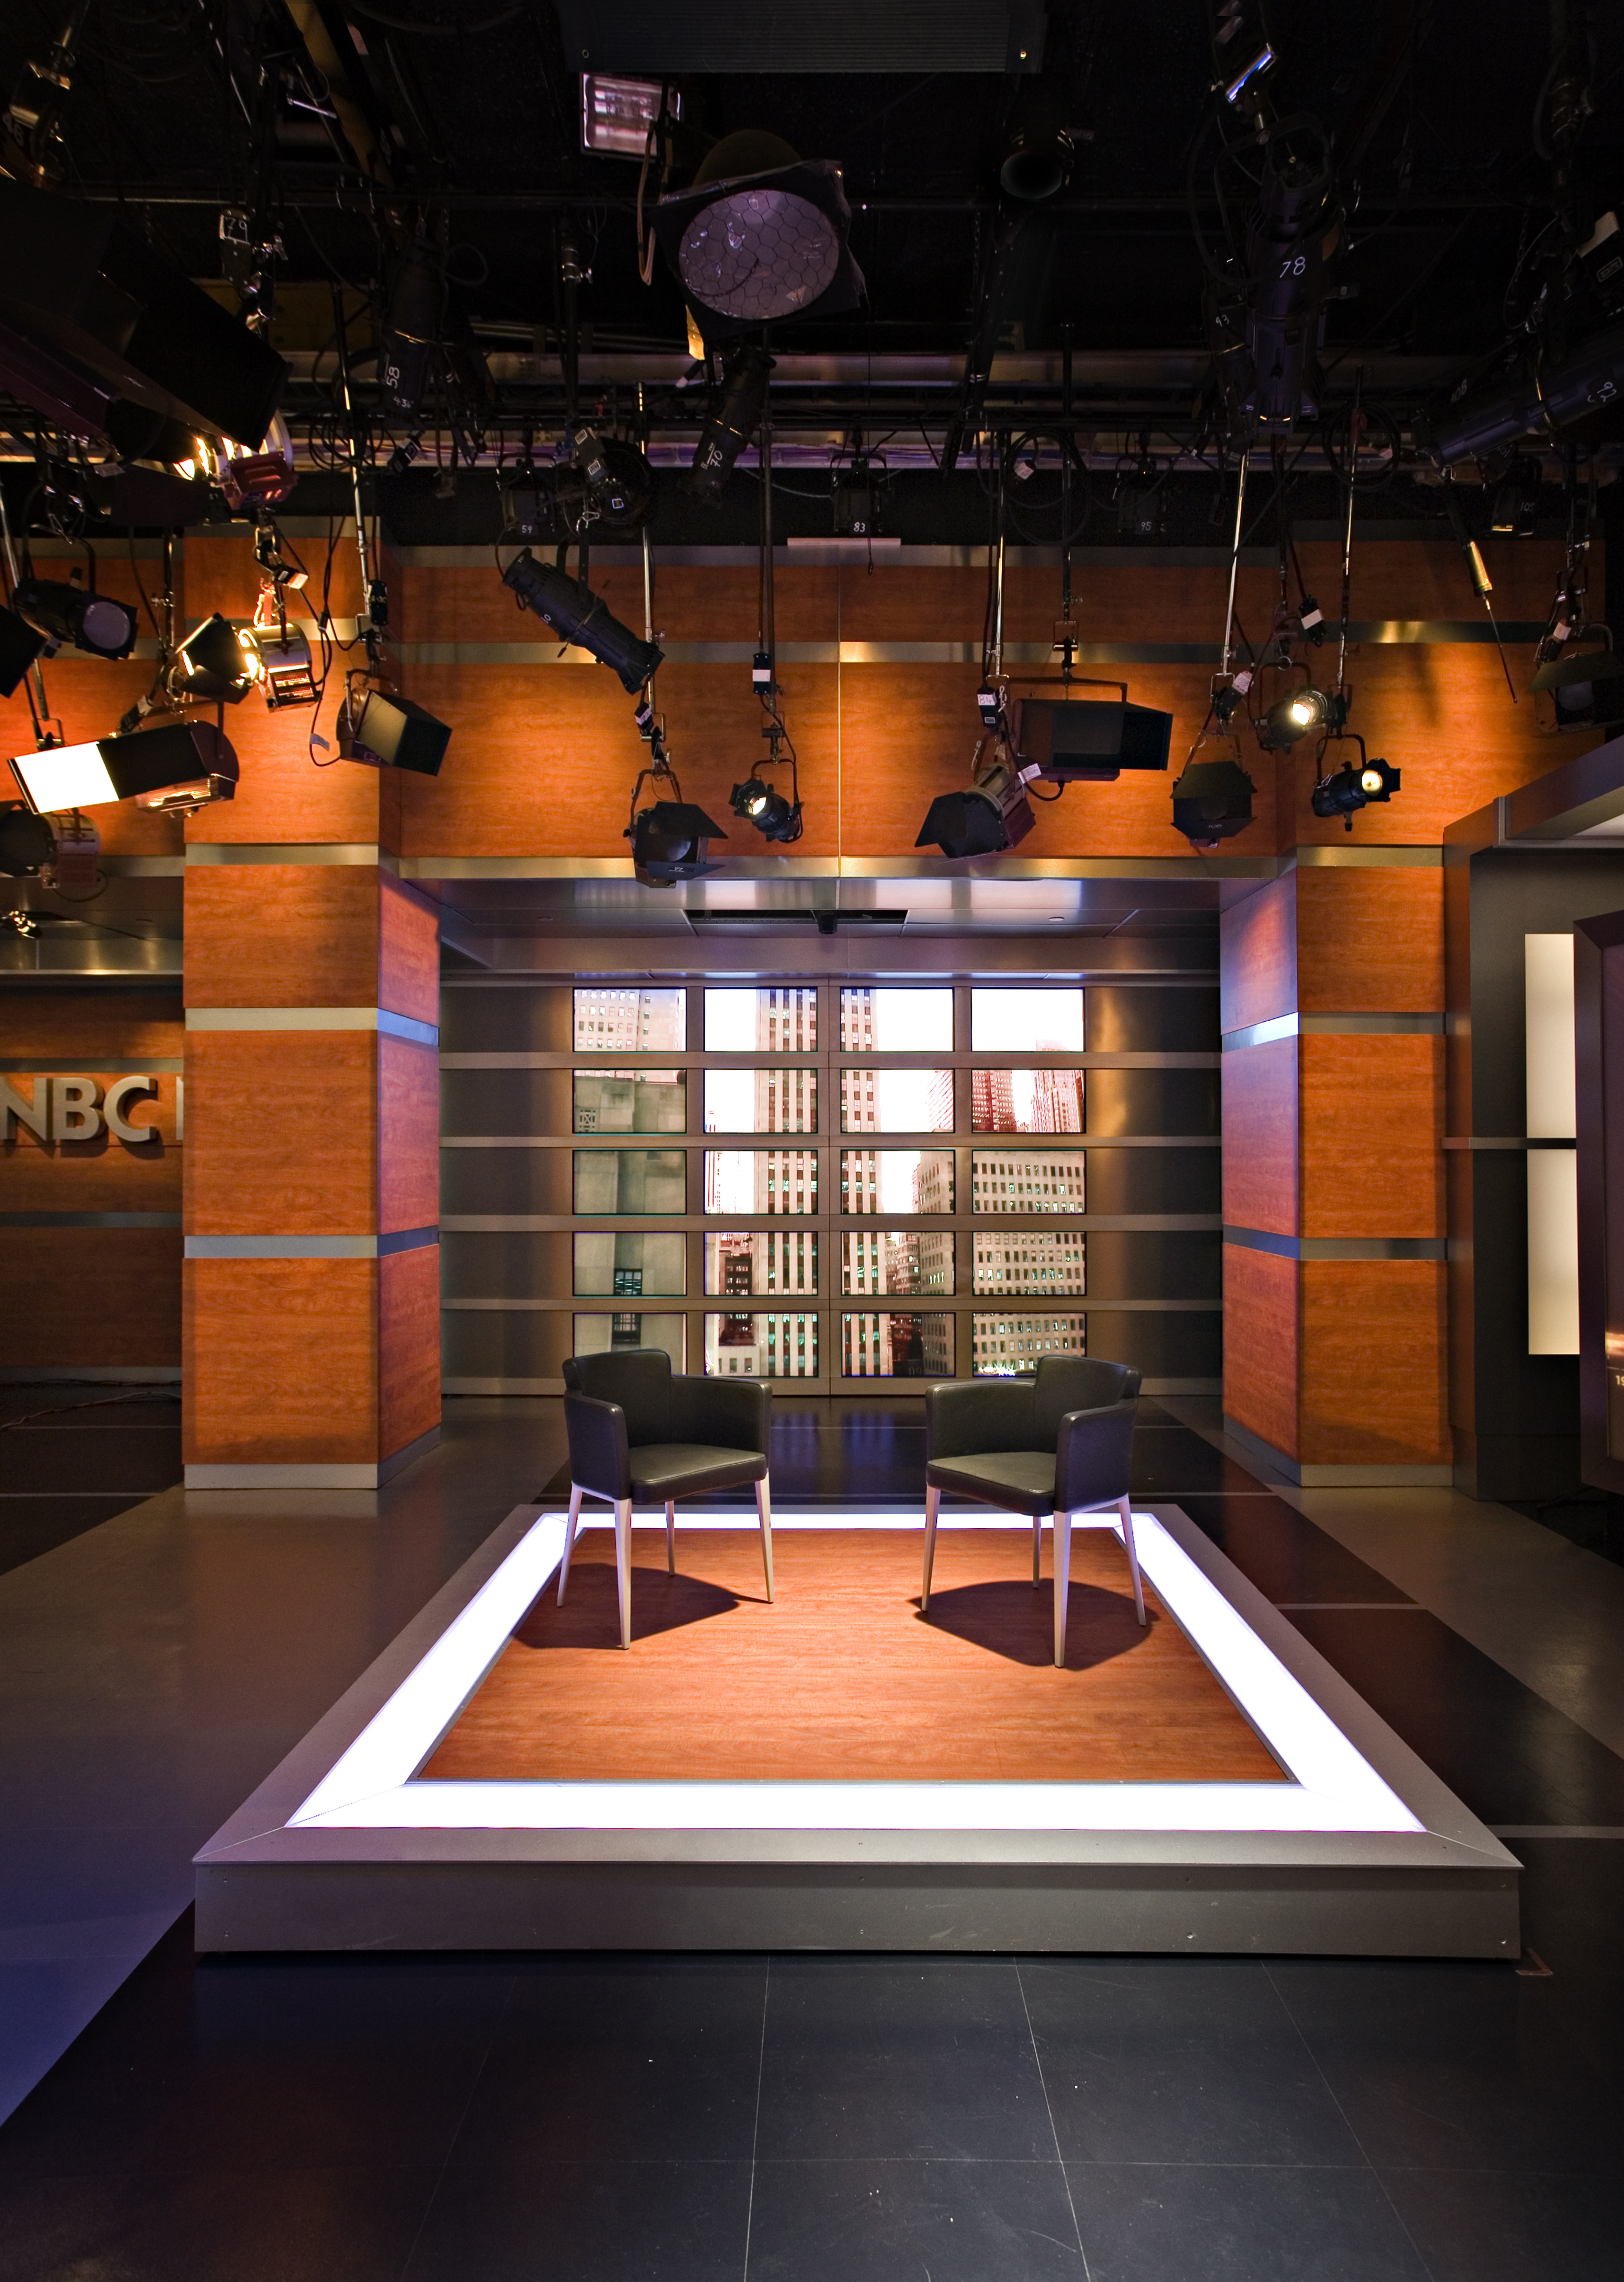 ncs_nbc-nightly-news-studio-3c-2007_0003